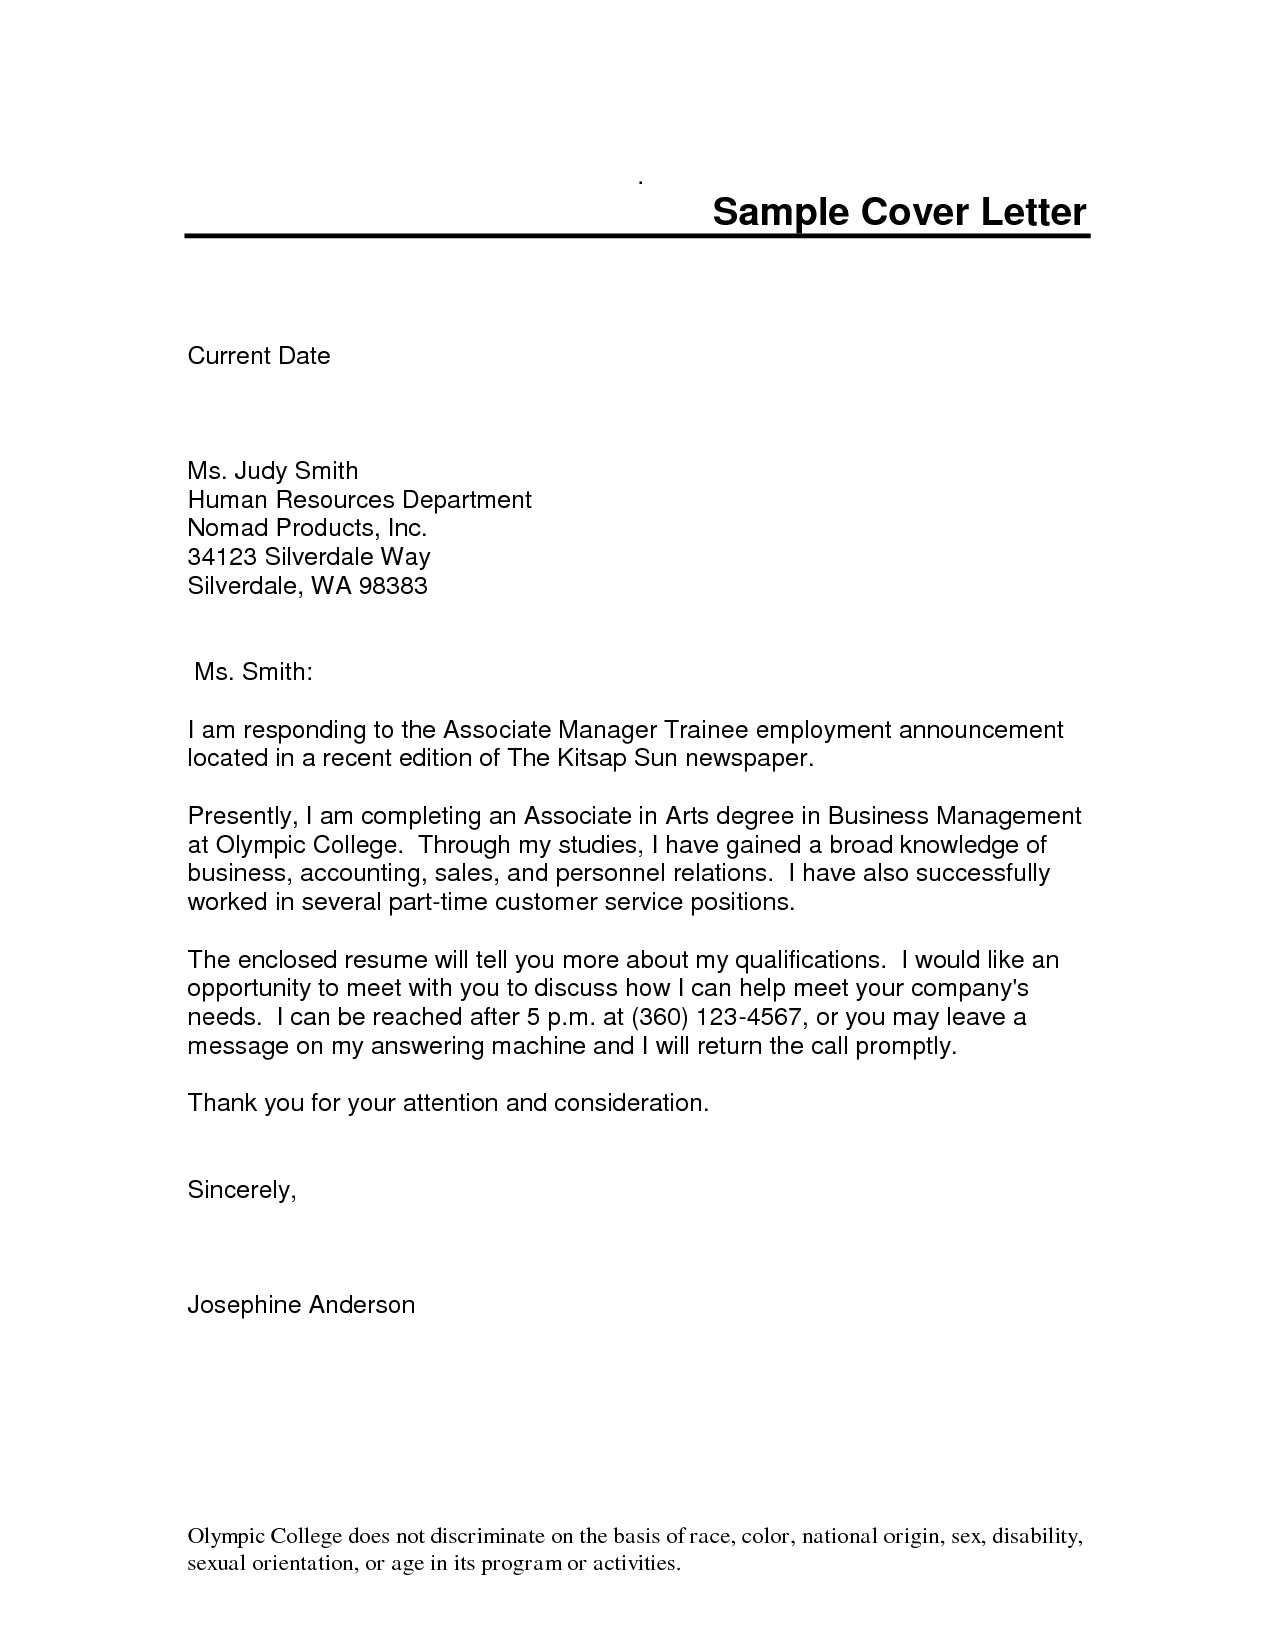 letter of interest template microsoft word